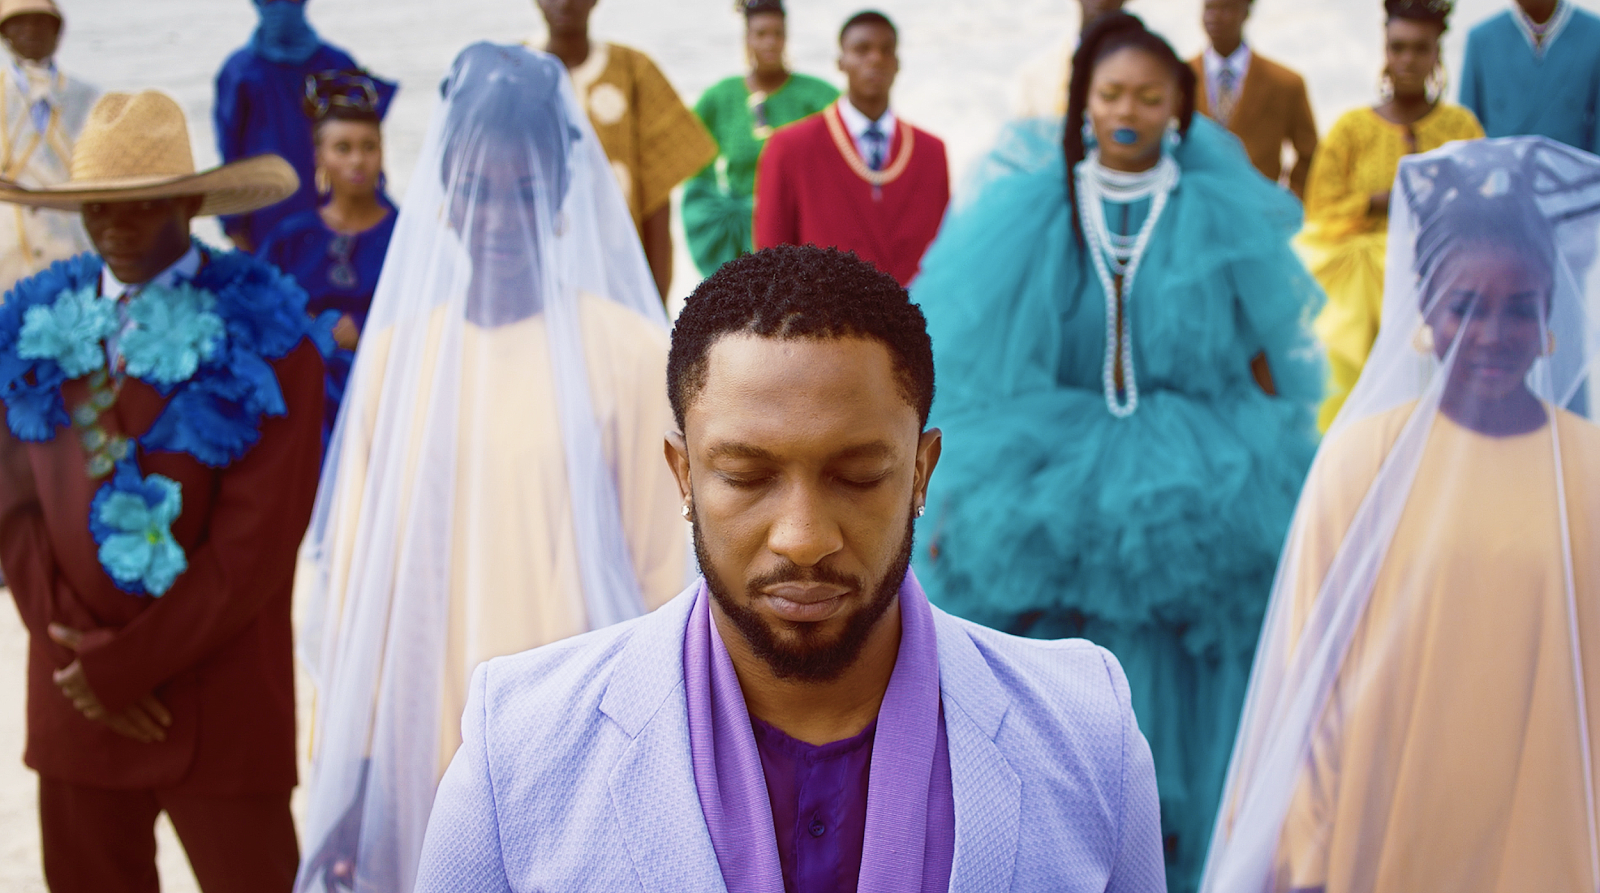 Darey reveals uplifting new single 'Jah Guide Me' with powerful visual